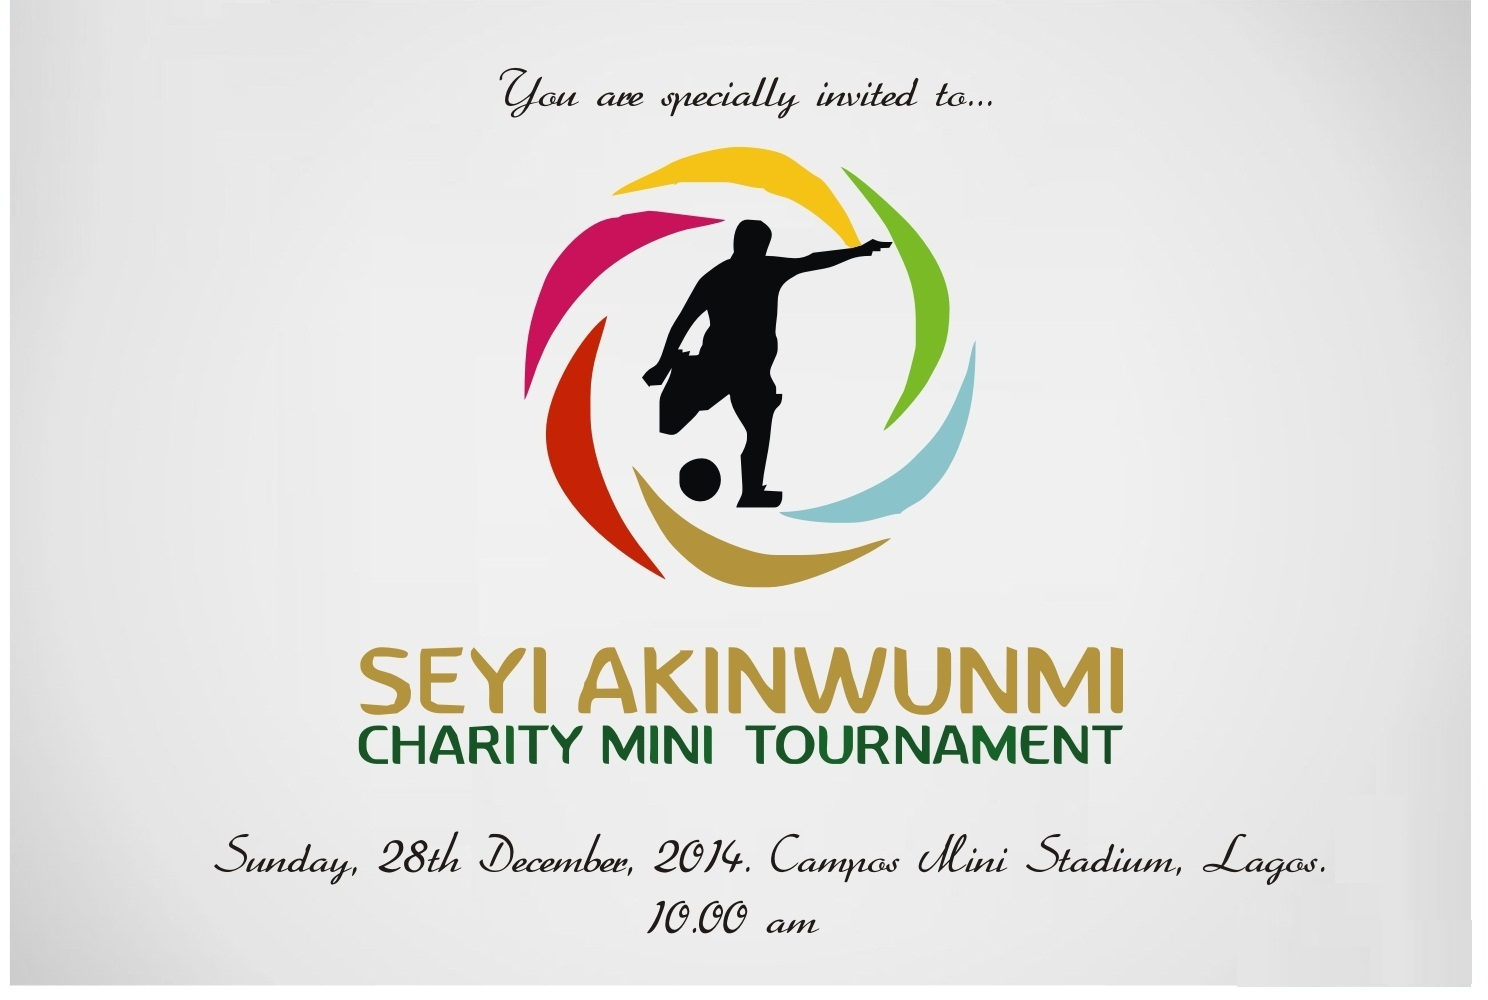 Seyi Akinwunmi Charity Mini Tournament